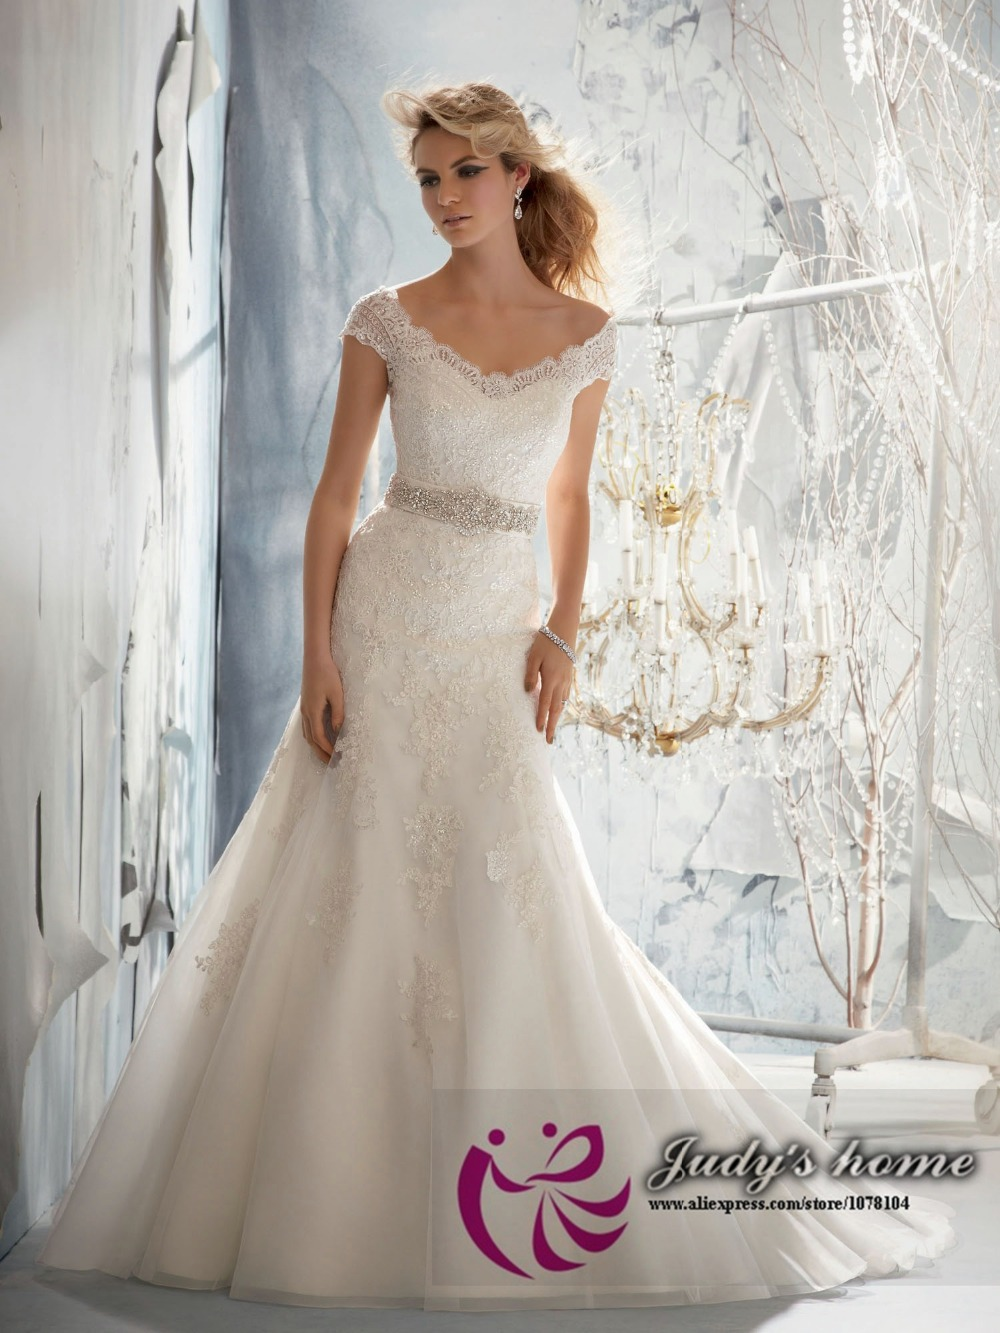 Exquisite Lace Appliqued Mermaid Wedding Dress Australia Wedding